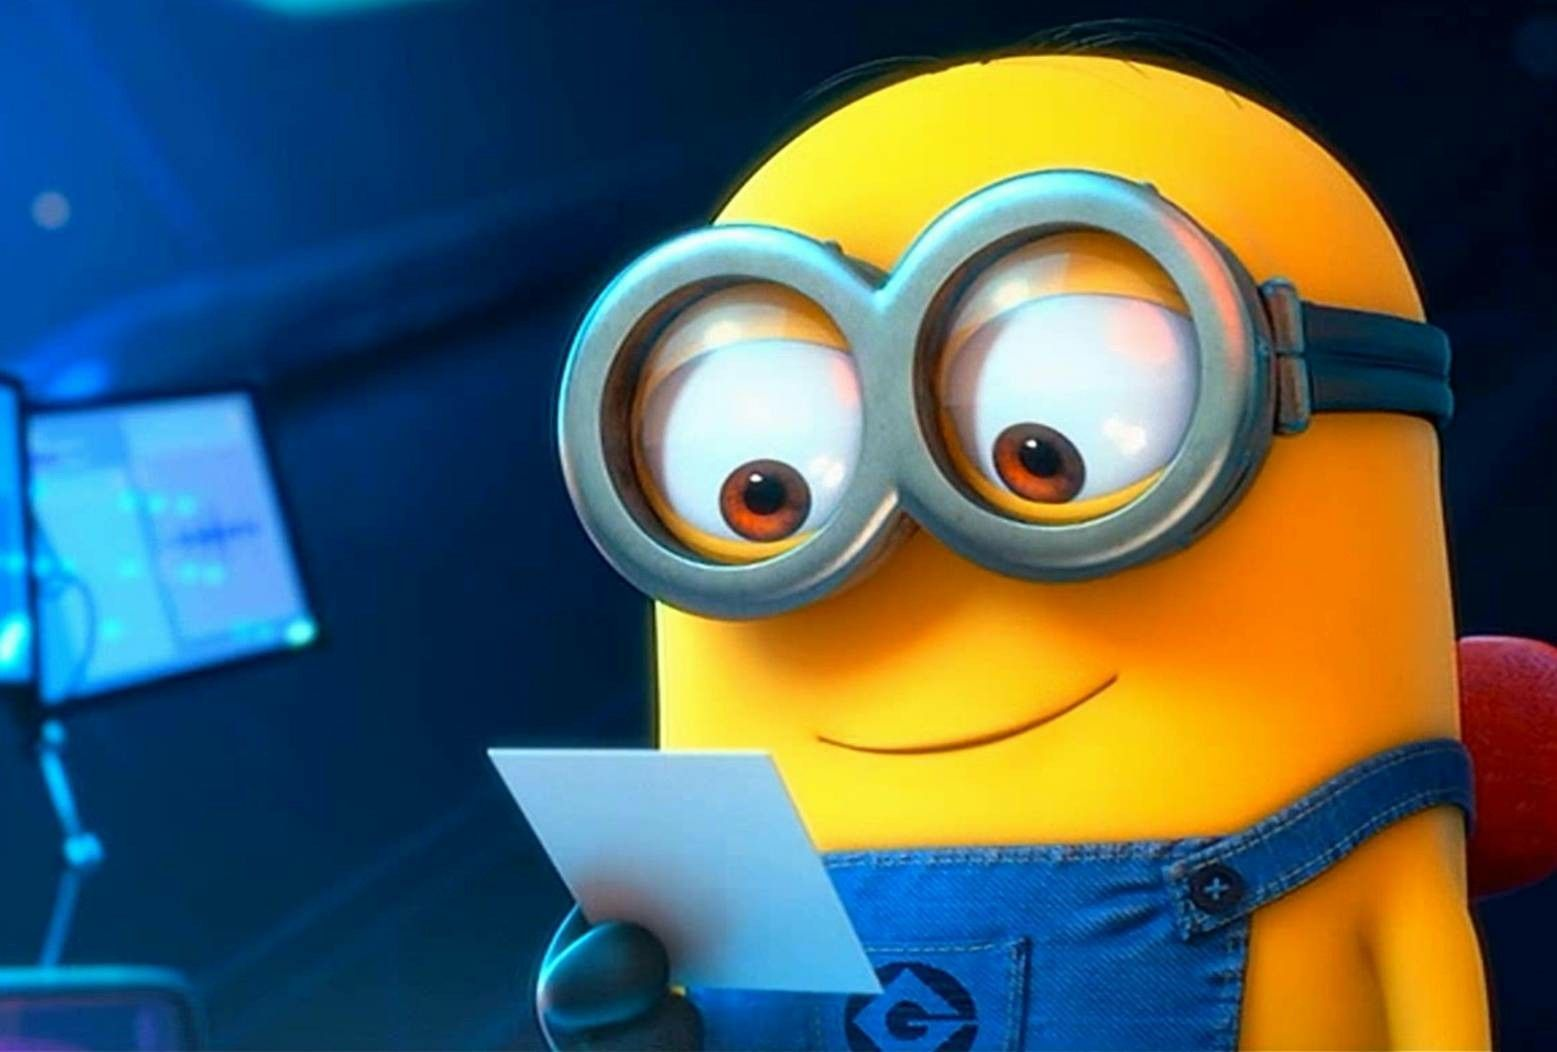 Pin By Sunset Sparkle On Minions With Images Minions Wallpaper